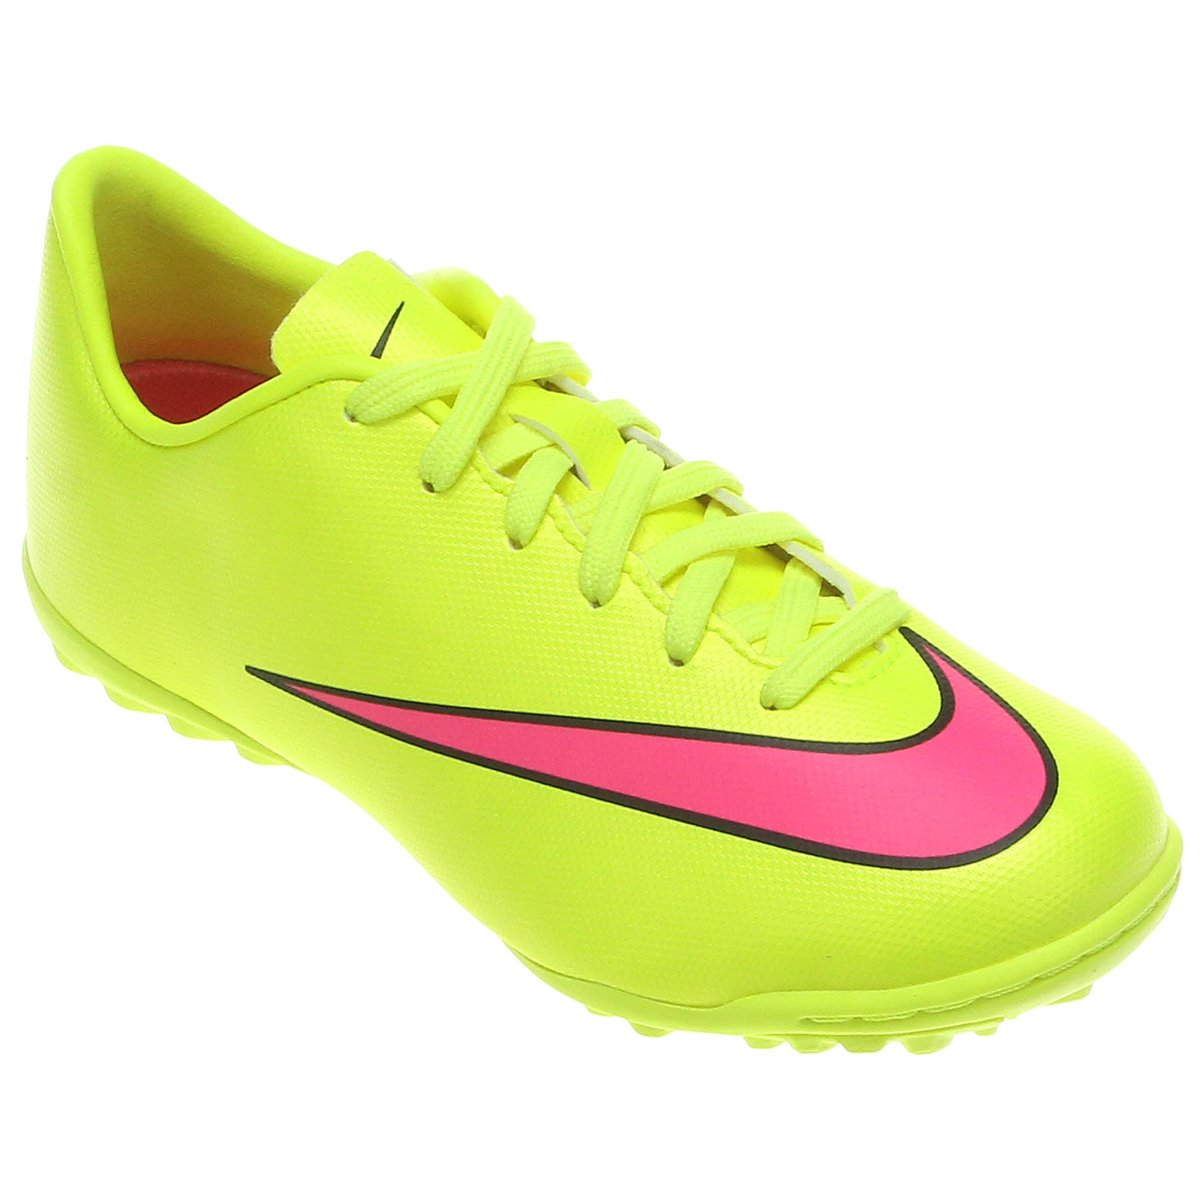 71fadc8742b0e ... spain chuteira nike mercurial victory 5 tf society infantil verde  limopink 453cd fa9d2